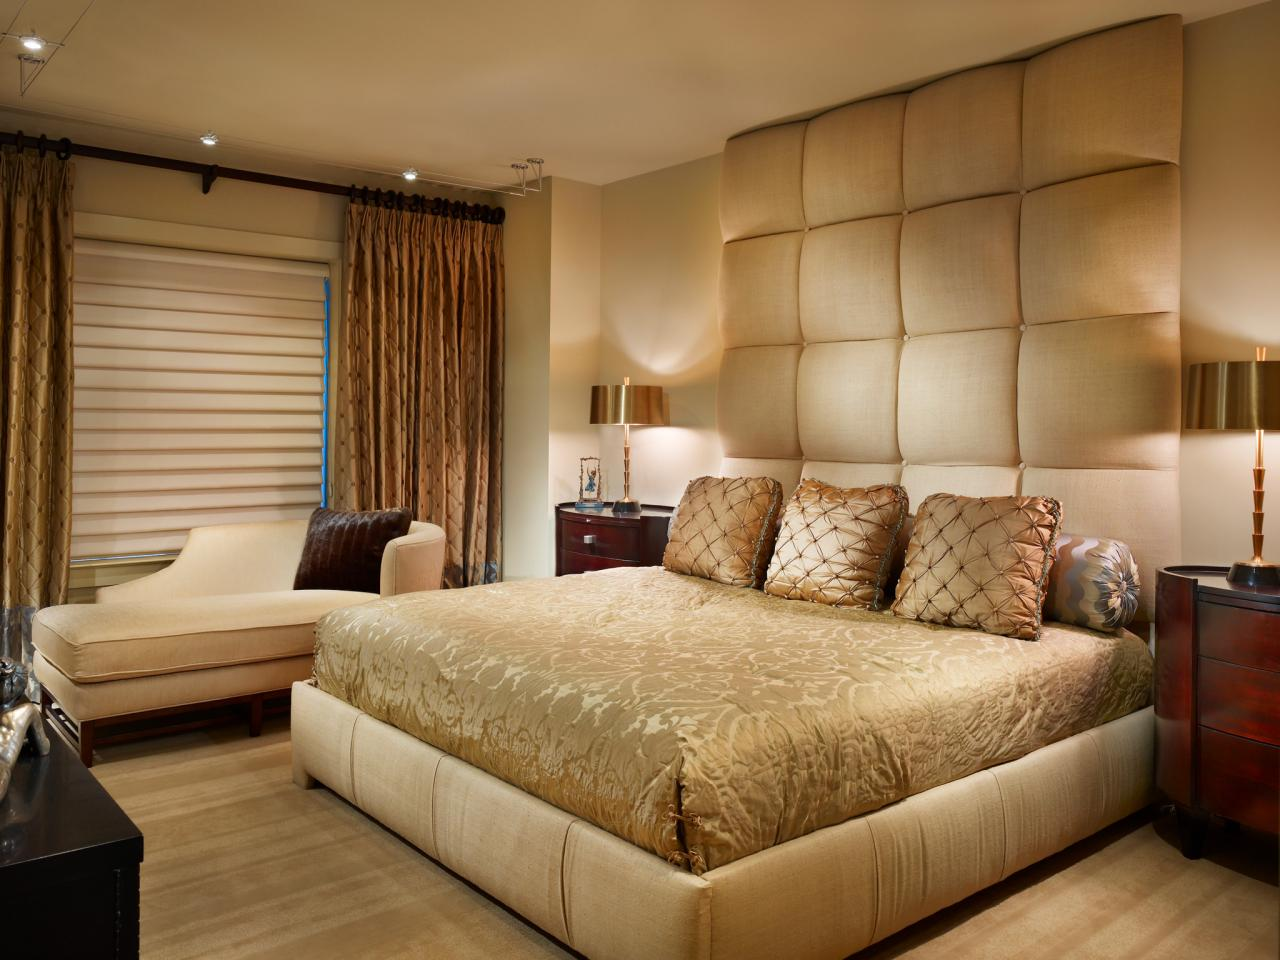 Pictures of Good Bedroom Color Schemes wall color schemes for bedrooms